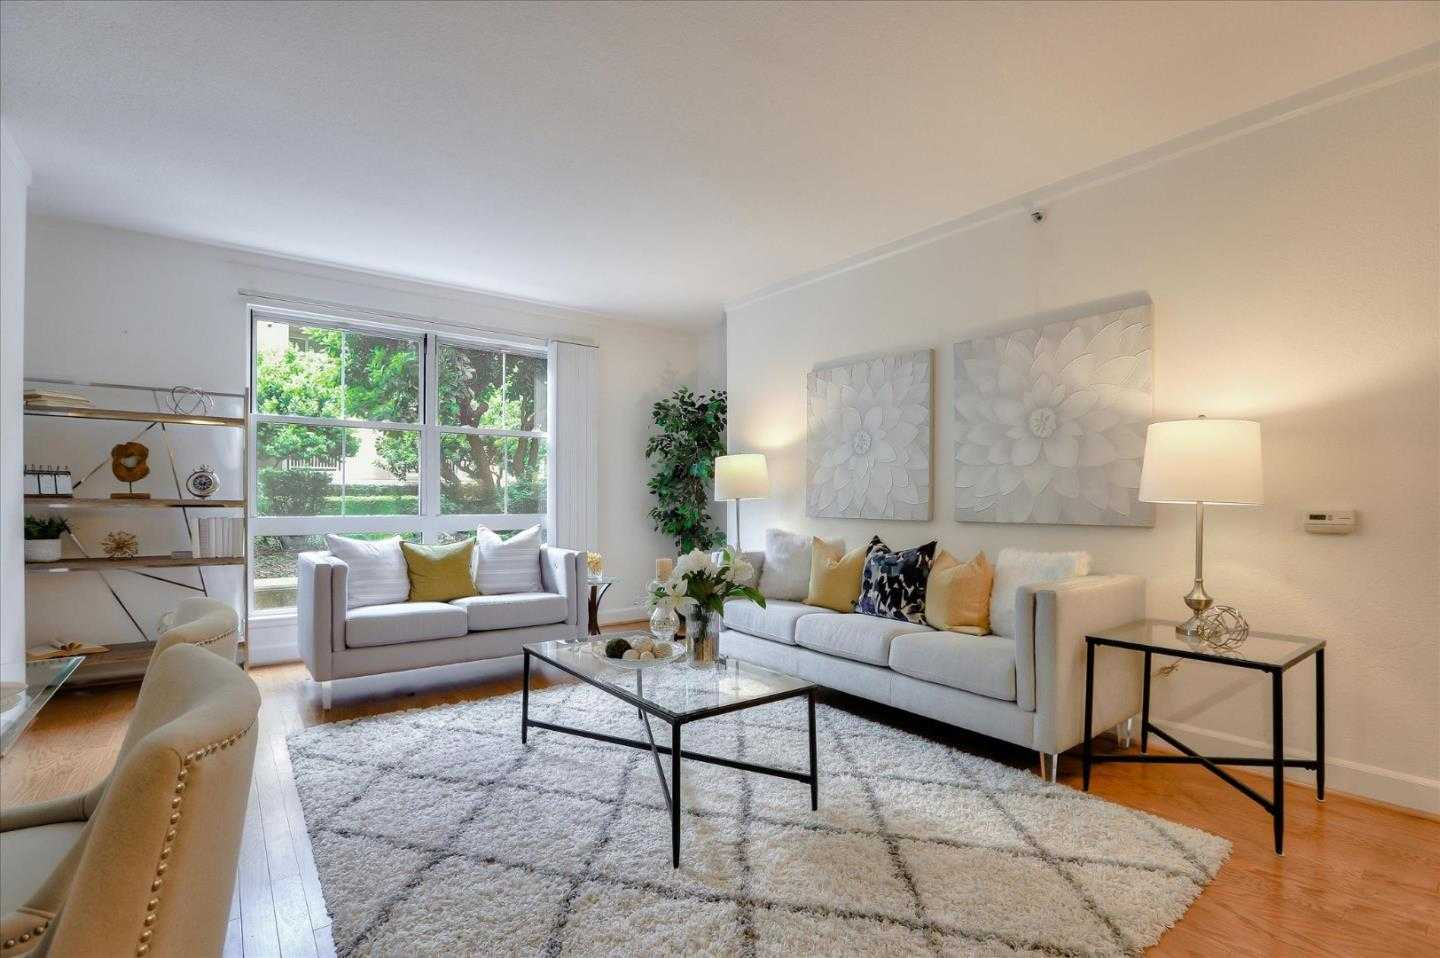 $1,350,000 - 2Br/2Ba -  for Sale in Cupertino